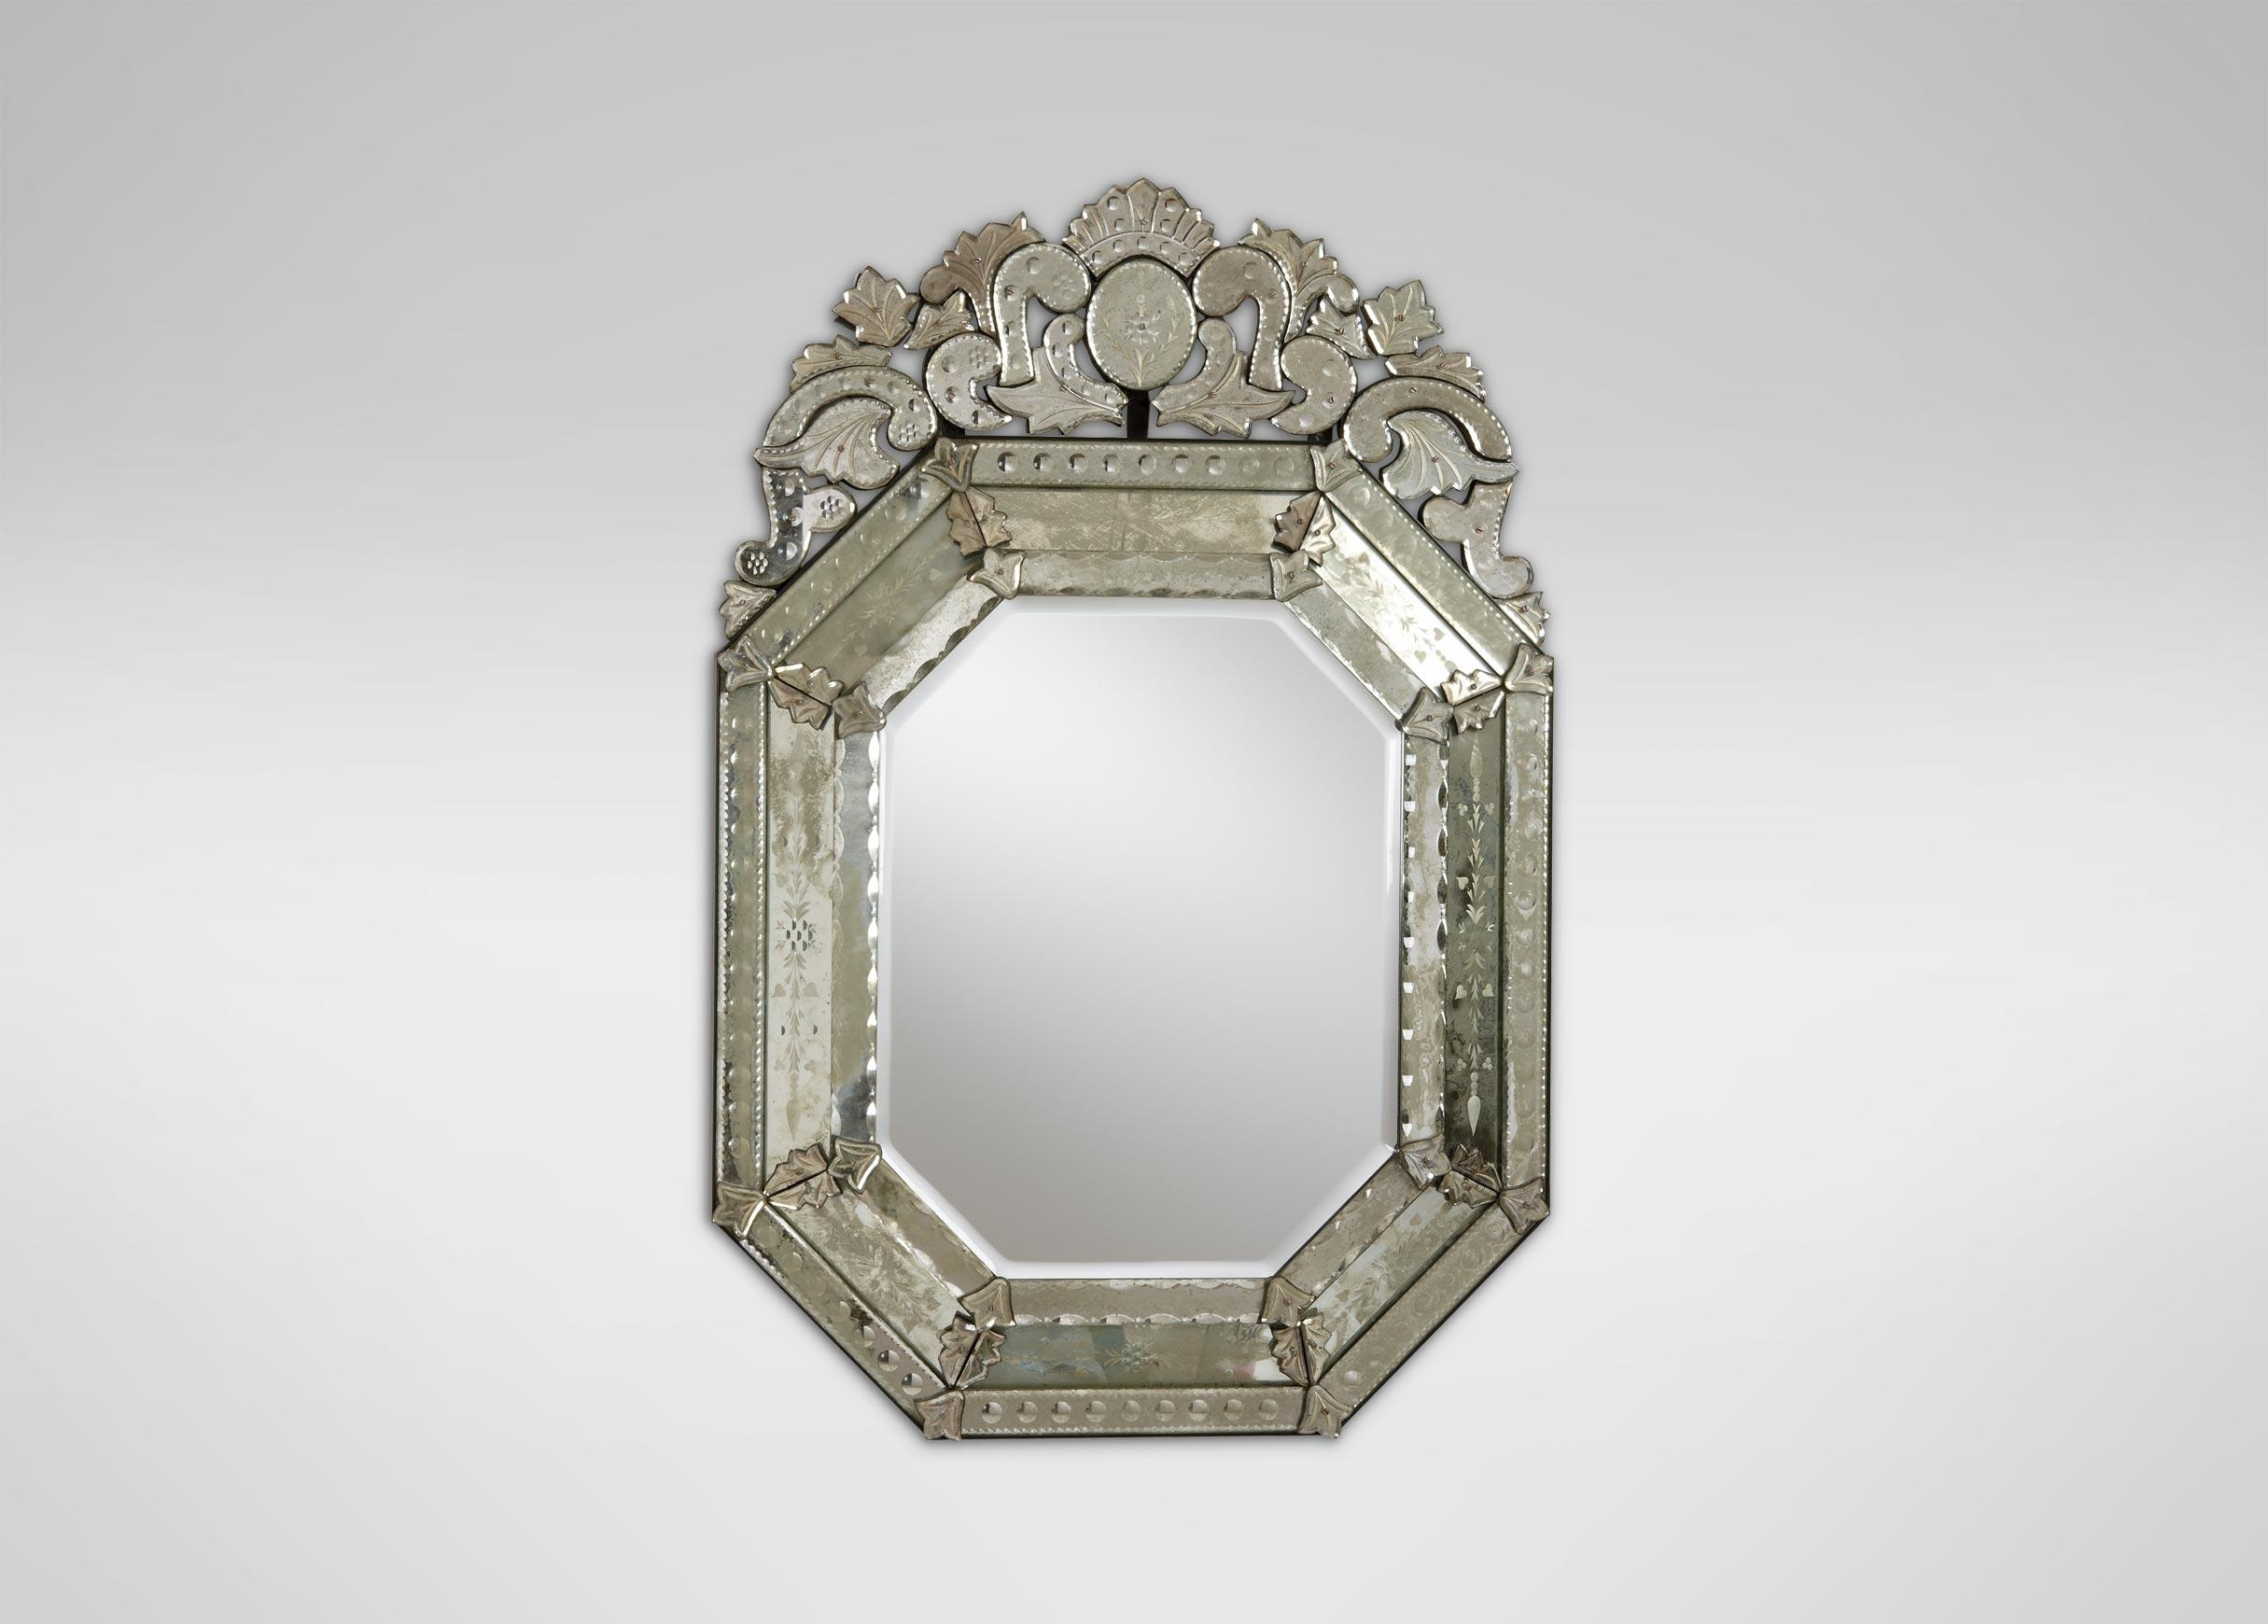 Ethan Allen Venetian Mirror 07 4055 – Classical Addiction Beaux For Small Venetian Mirror (Image 6 of 20)